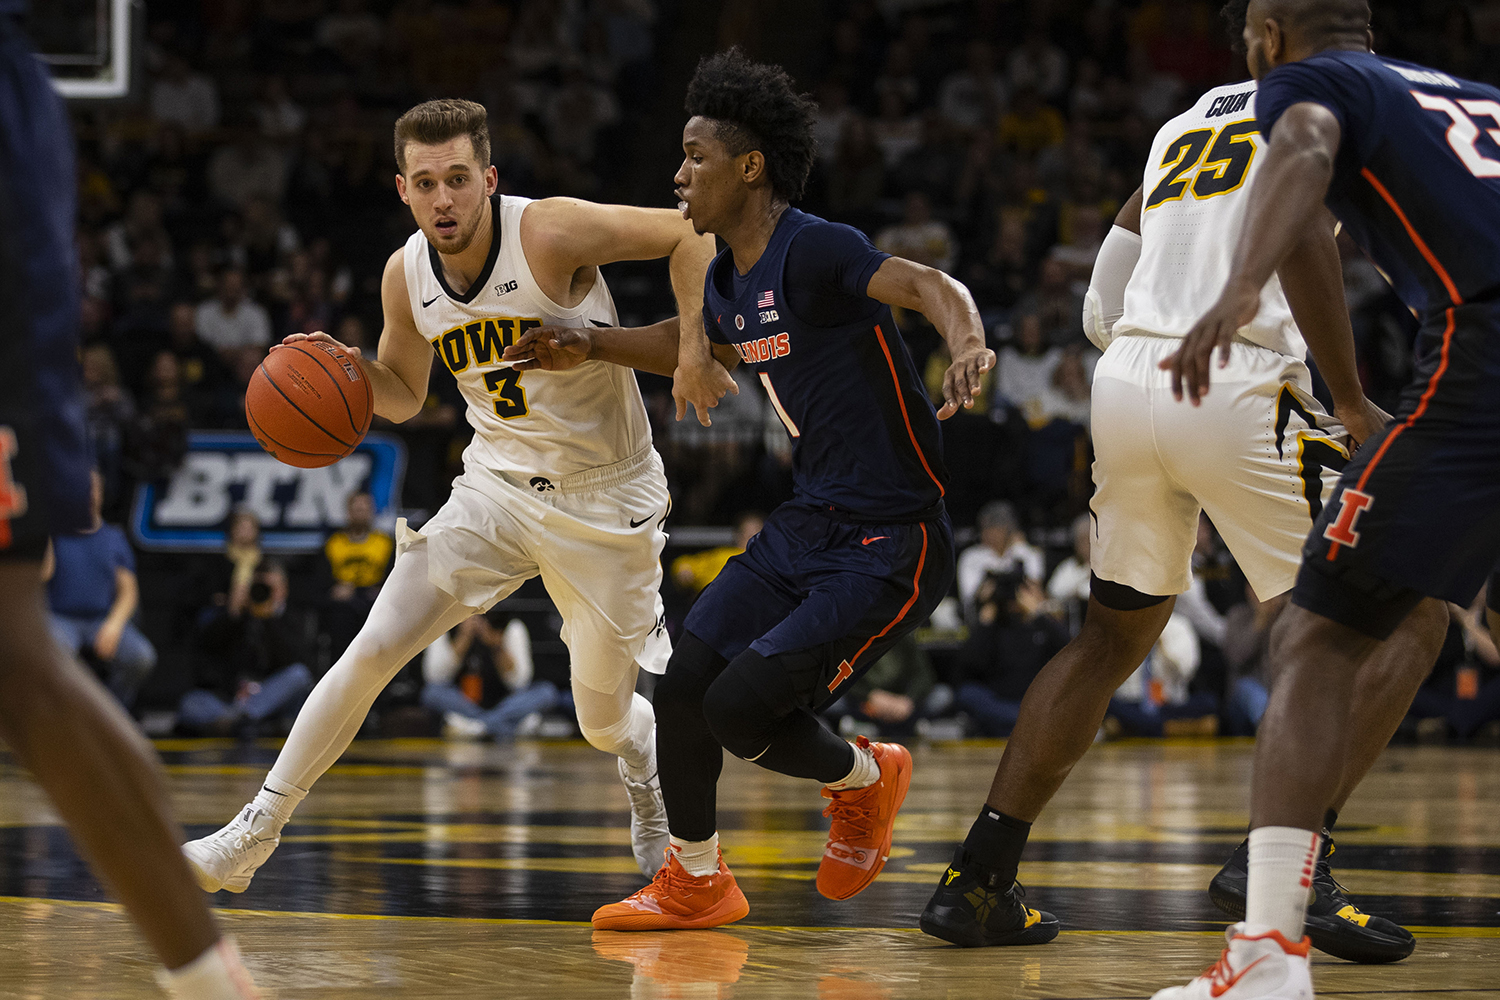 Iowa+guard+Jordan+Bohannon+drives+to+the+hoop+during+the+Iowa%2FIllinois+men%27s+basketball+game+at+Carver-Hawkeye+Arena+on+Sunday%2C+January+20%2C+2019.+The+Hawkeyes+defeated+the+Fighting+Illini%2C+95-71.+